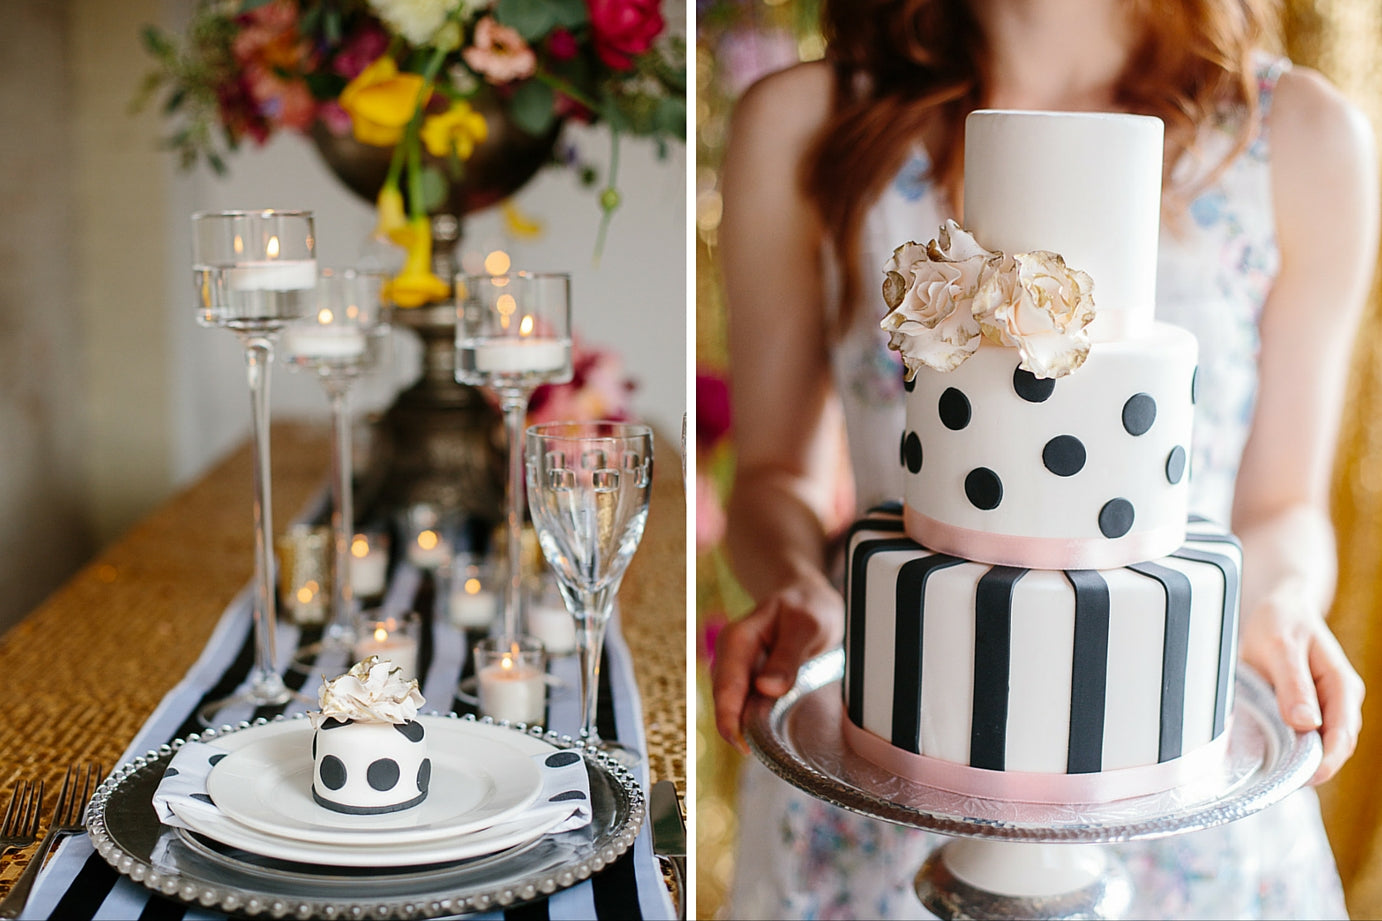 Rescue Flats | http://rescueflats.com/ | Kate Spade Inspired Wedding Cake | Cake by: The Art of Cake